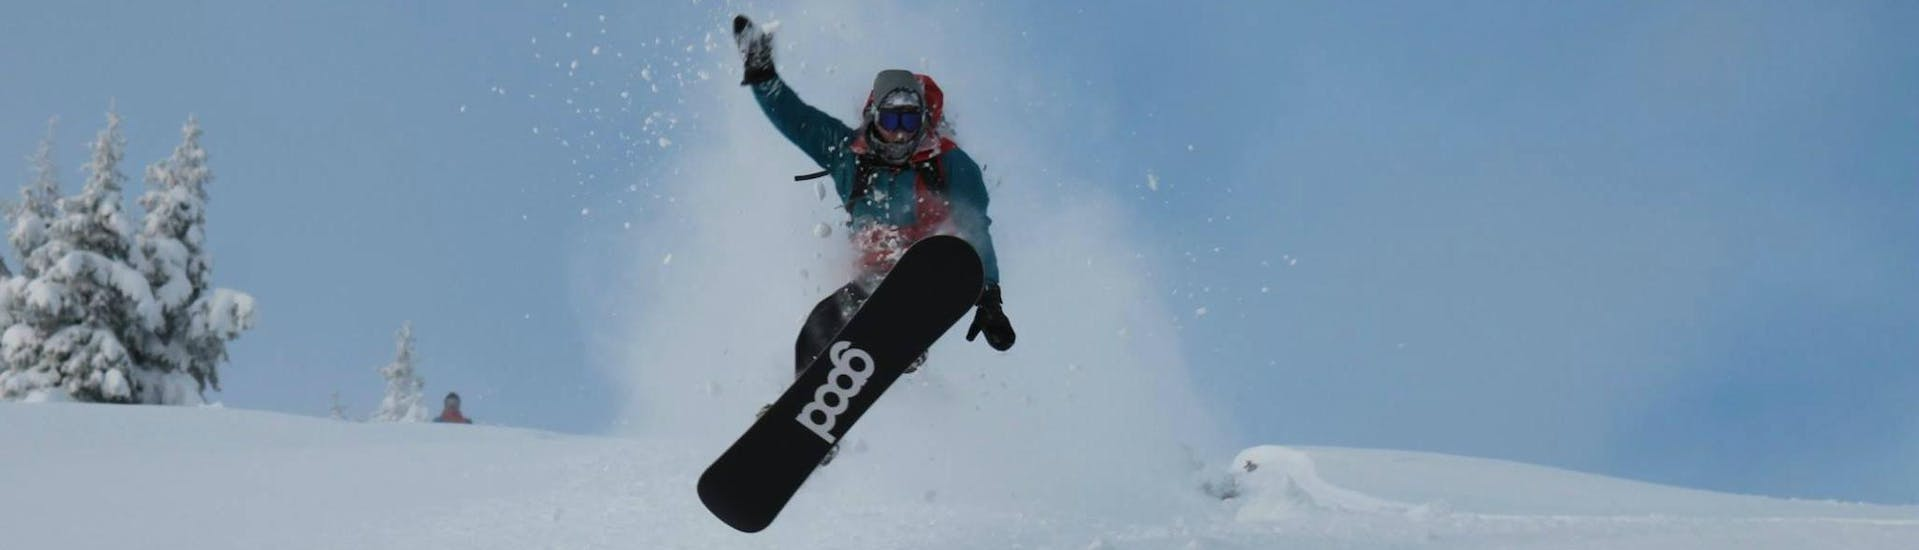 Freestyle Snowboarding Lessons for All Levels with Equipment